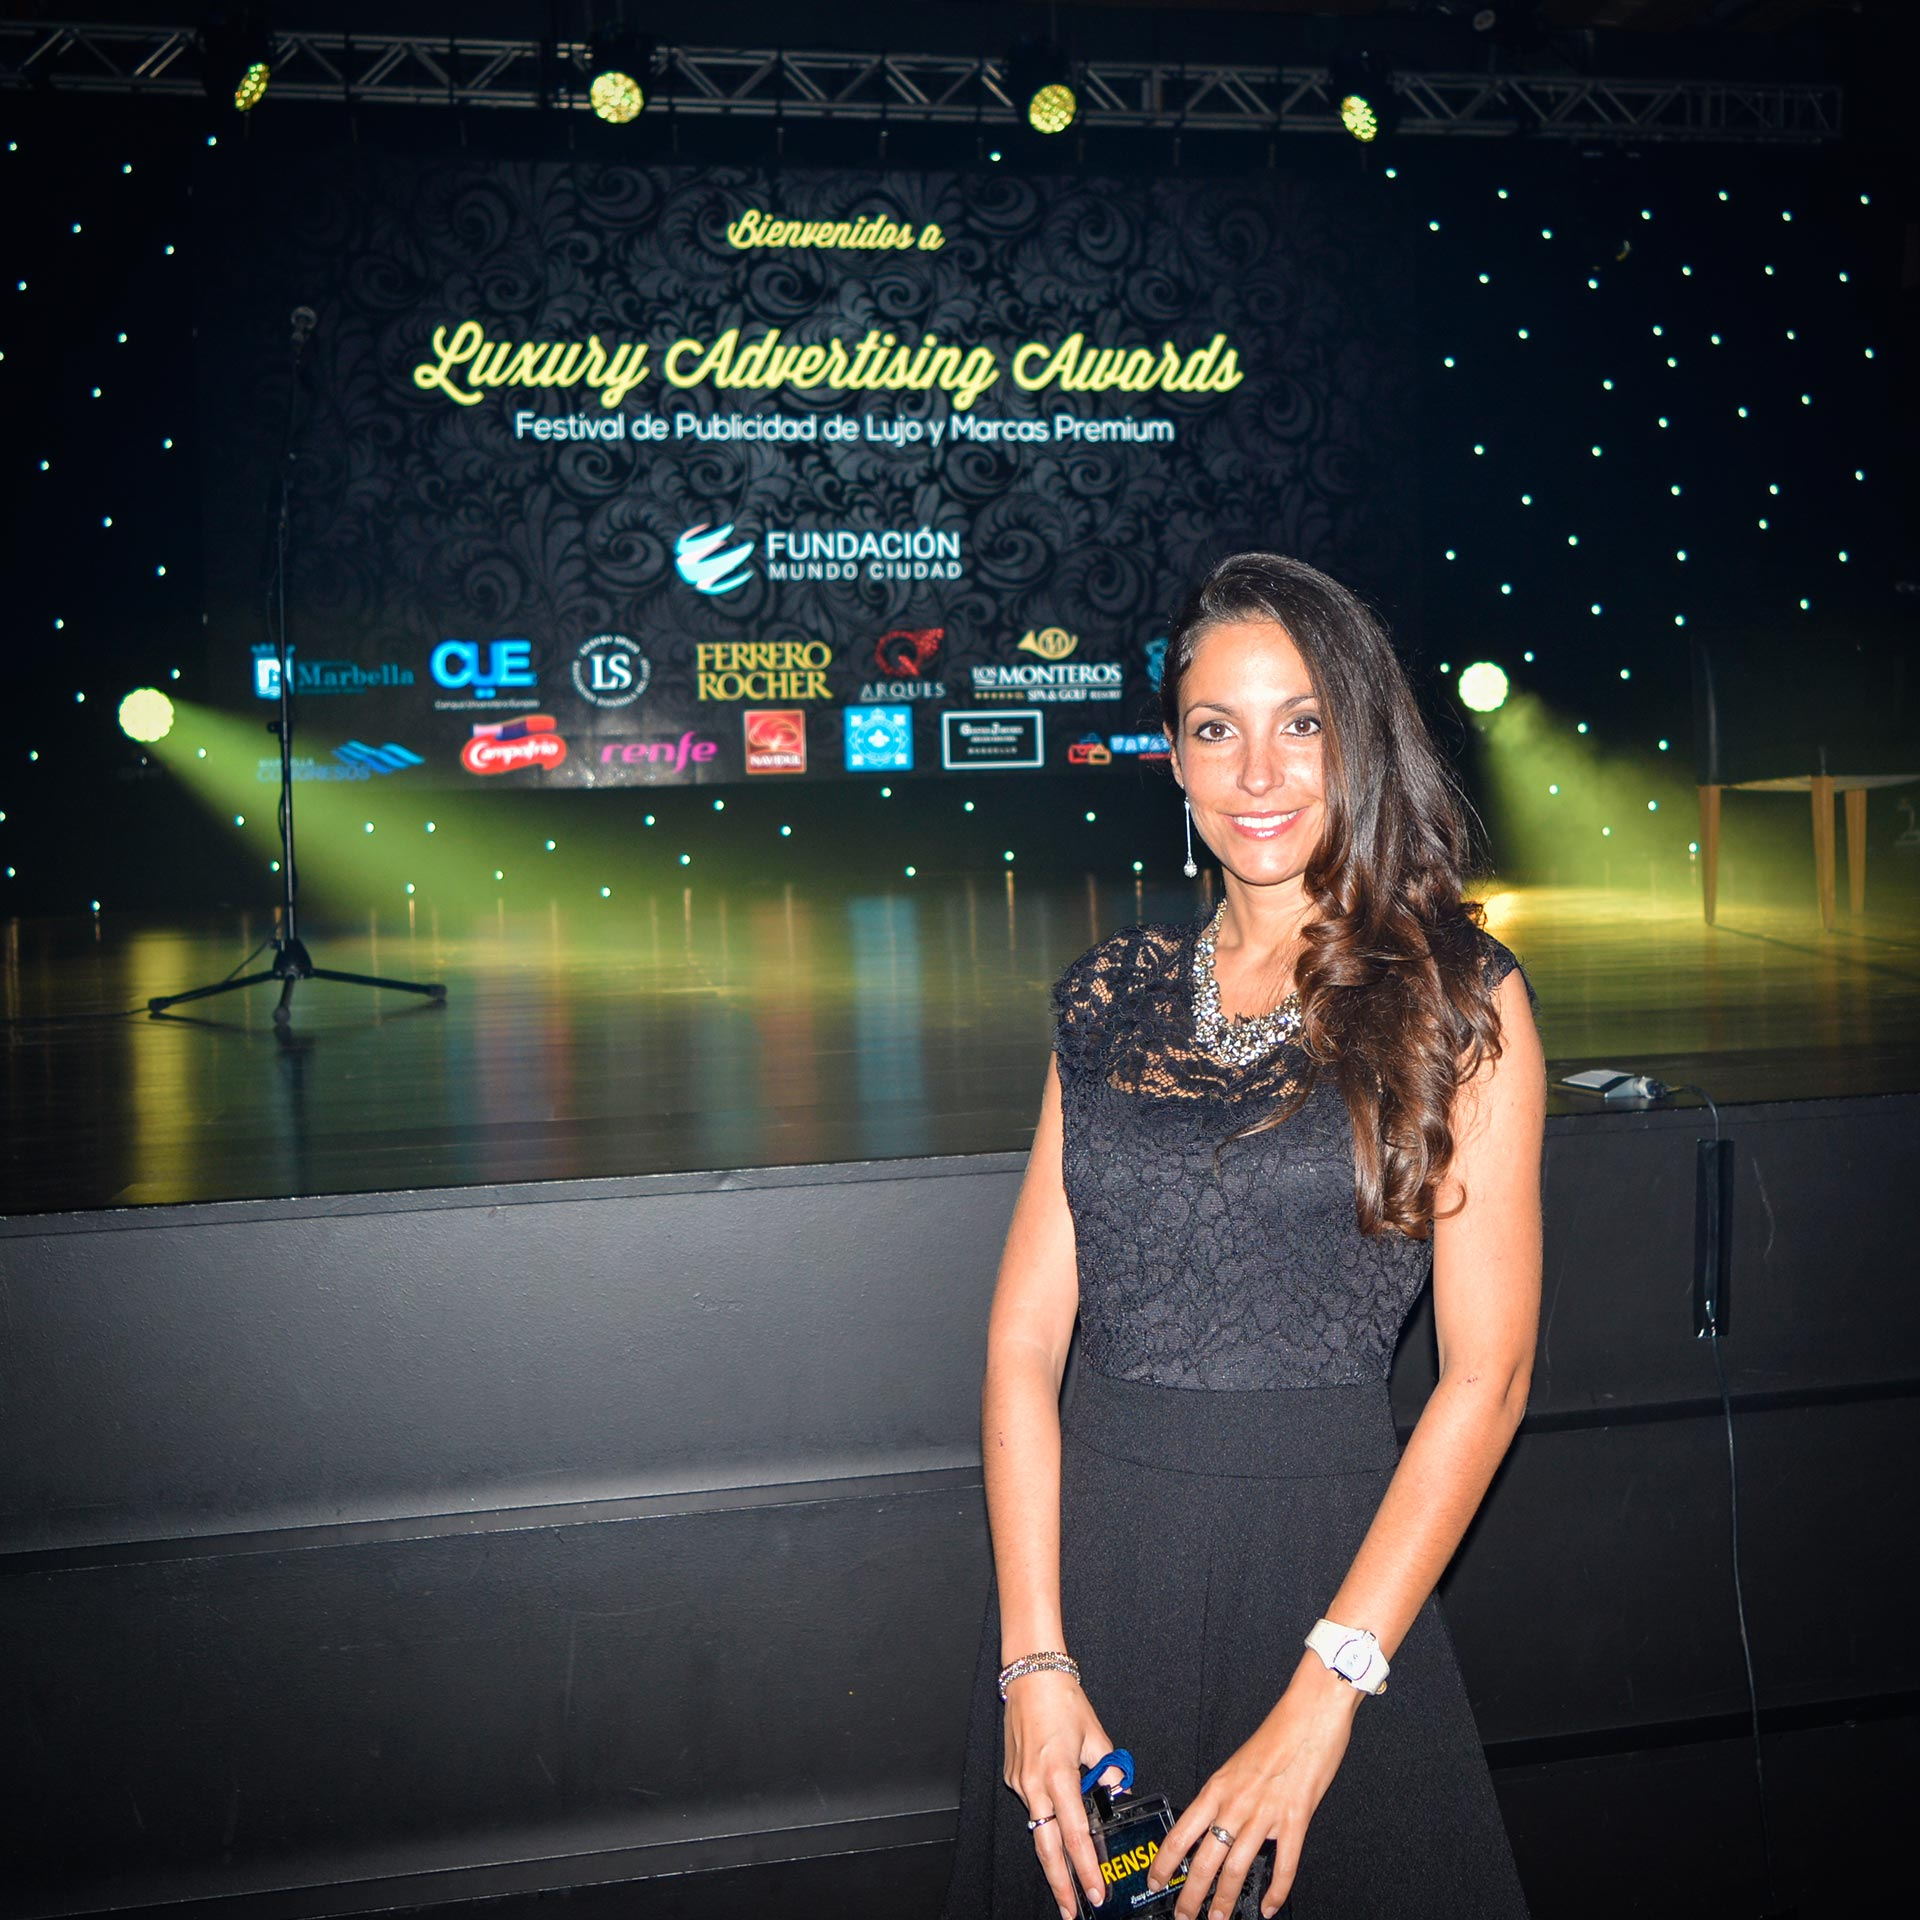 Ariana Soffici at Luxury Advertising Awards 2015